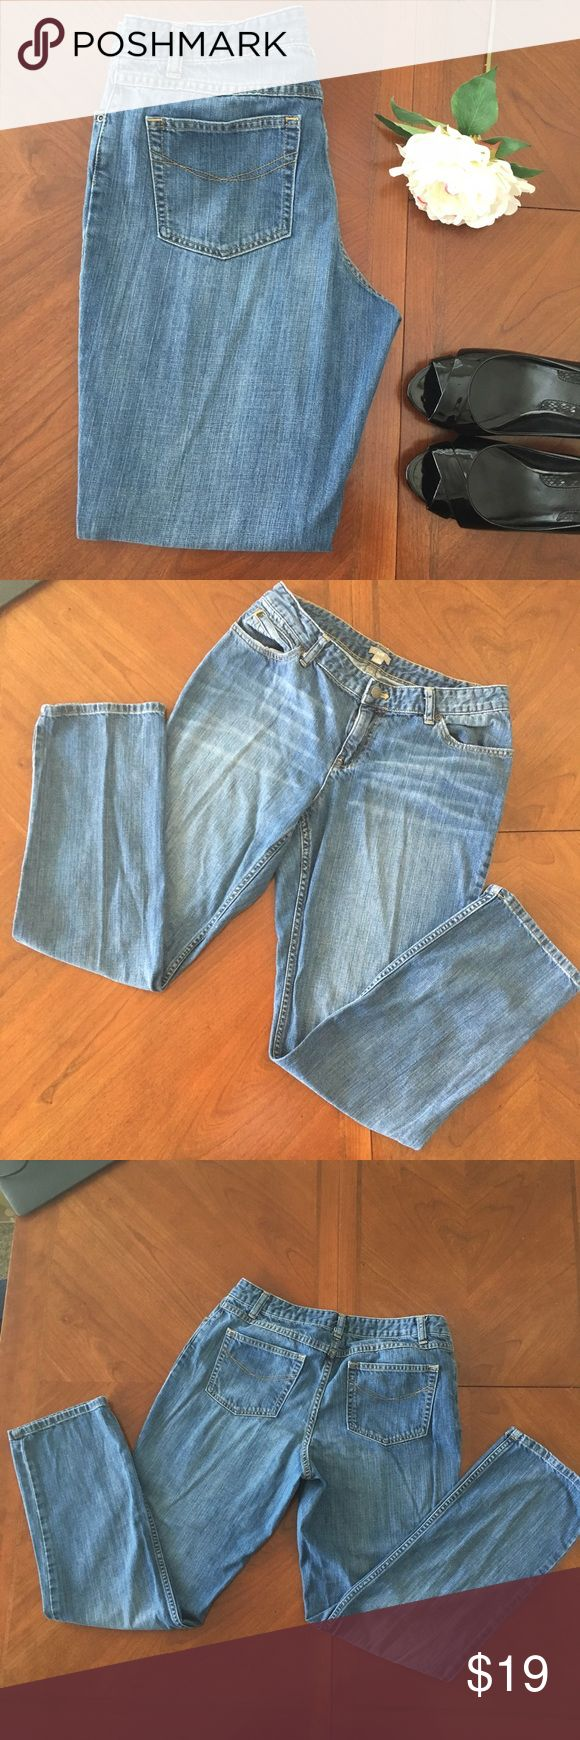 J. Jill blue medium wash flare leg jeans size 10 J. Jill blue flare leg size 10 Jeans  Brand: J. Jill Color: Medium Blue Style: Flare Size: 10 Condition:VGUC  Approx measurements and fabric content pictured Smoke free home J. Jill Jeans Flare & Wide Leg